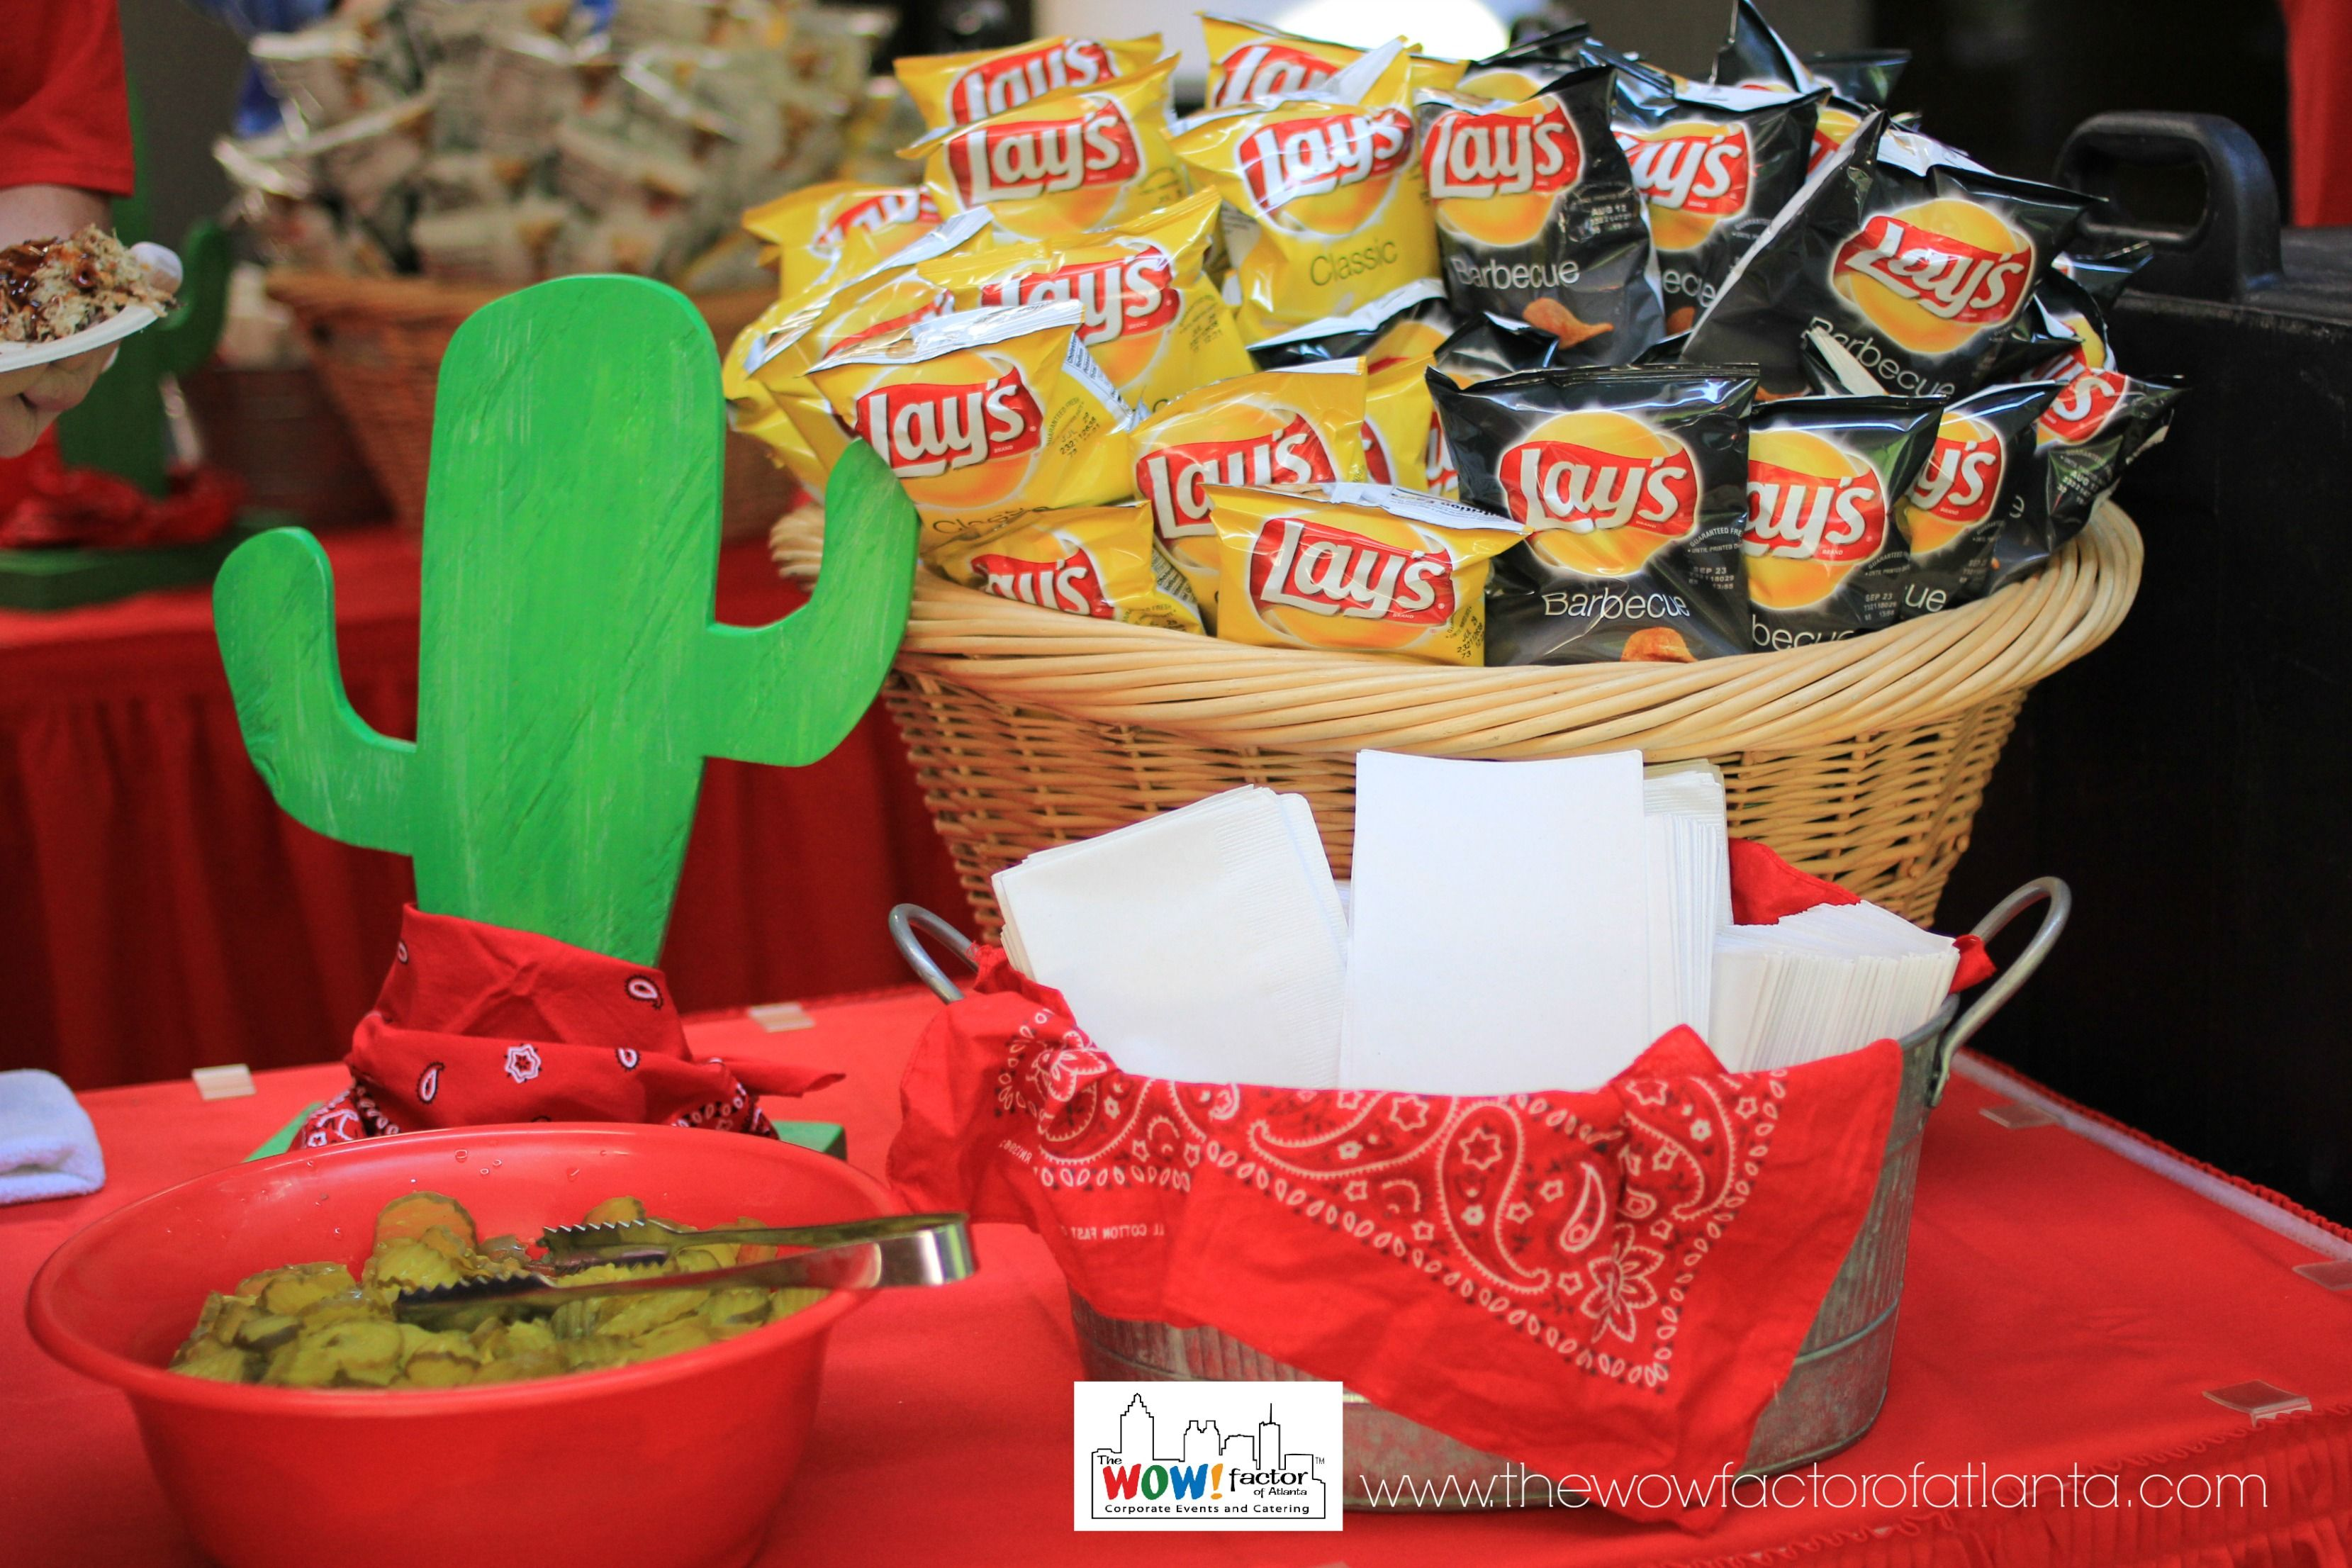 Get creative with your sides and condiment stations!